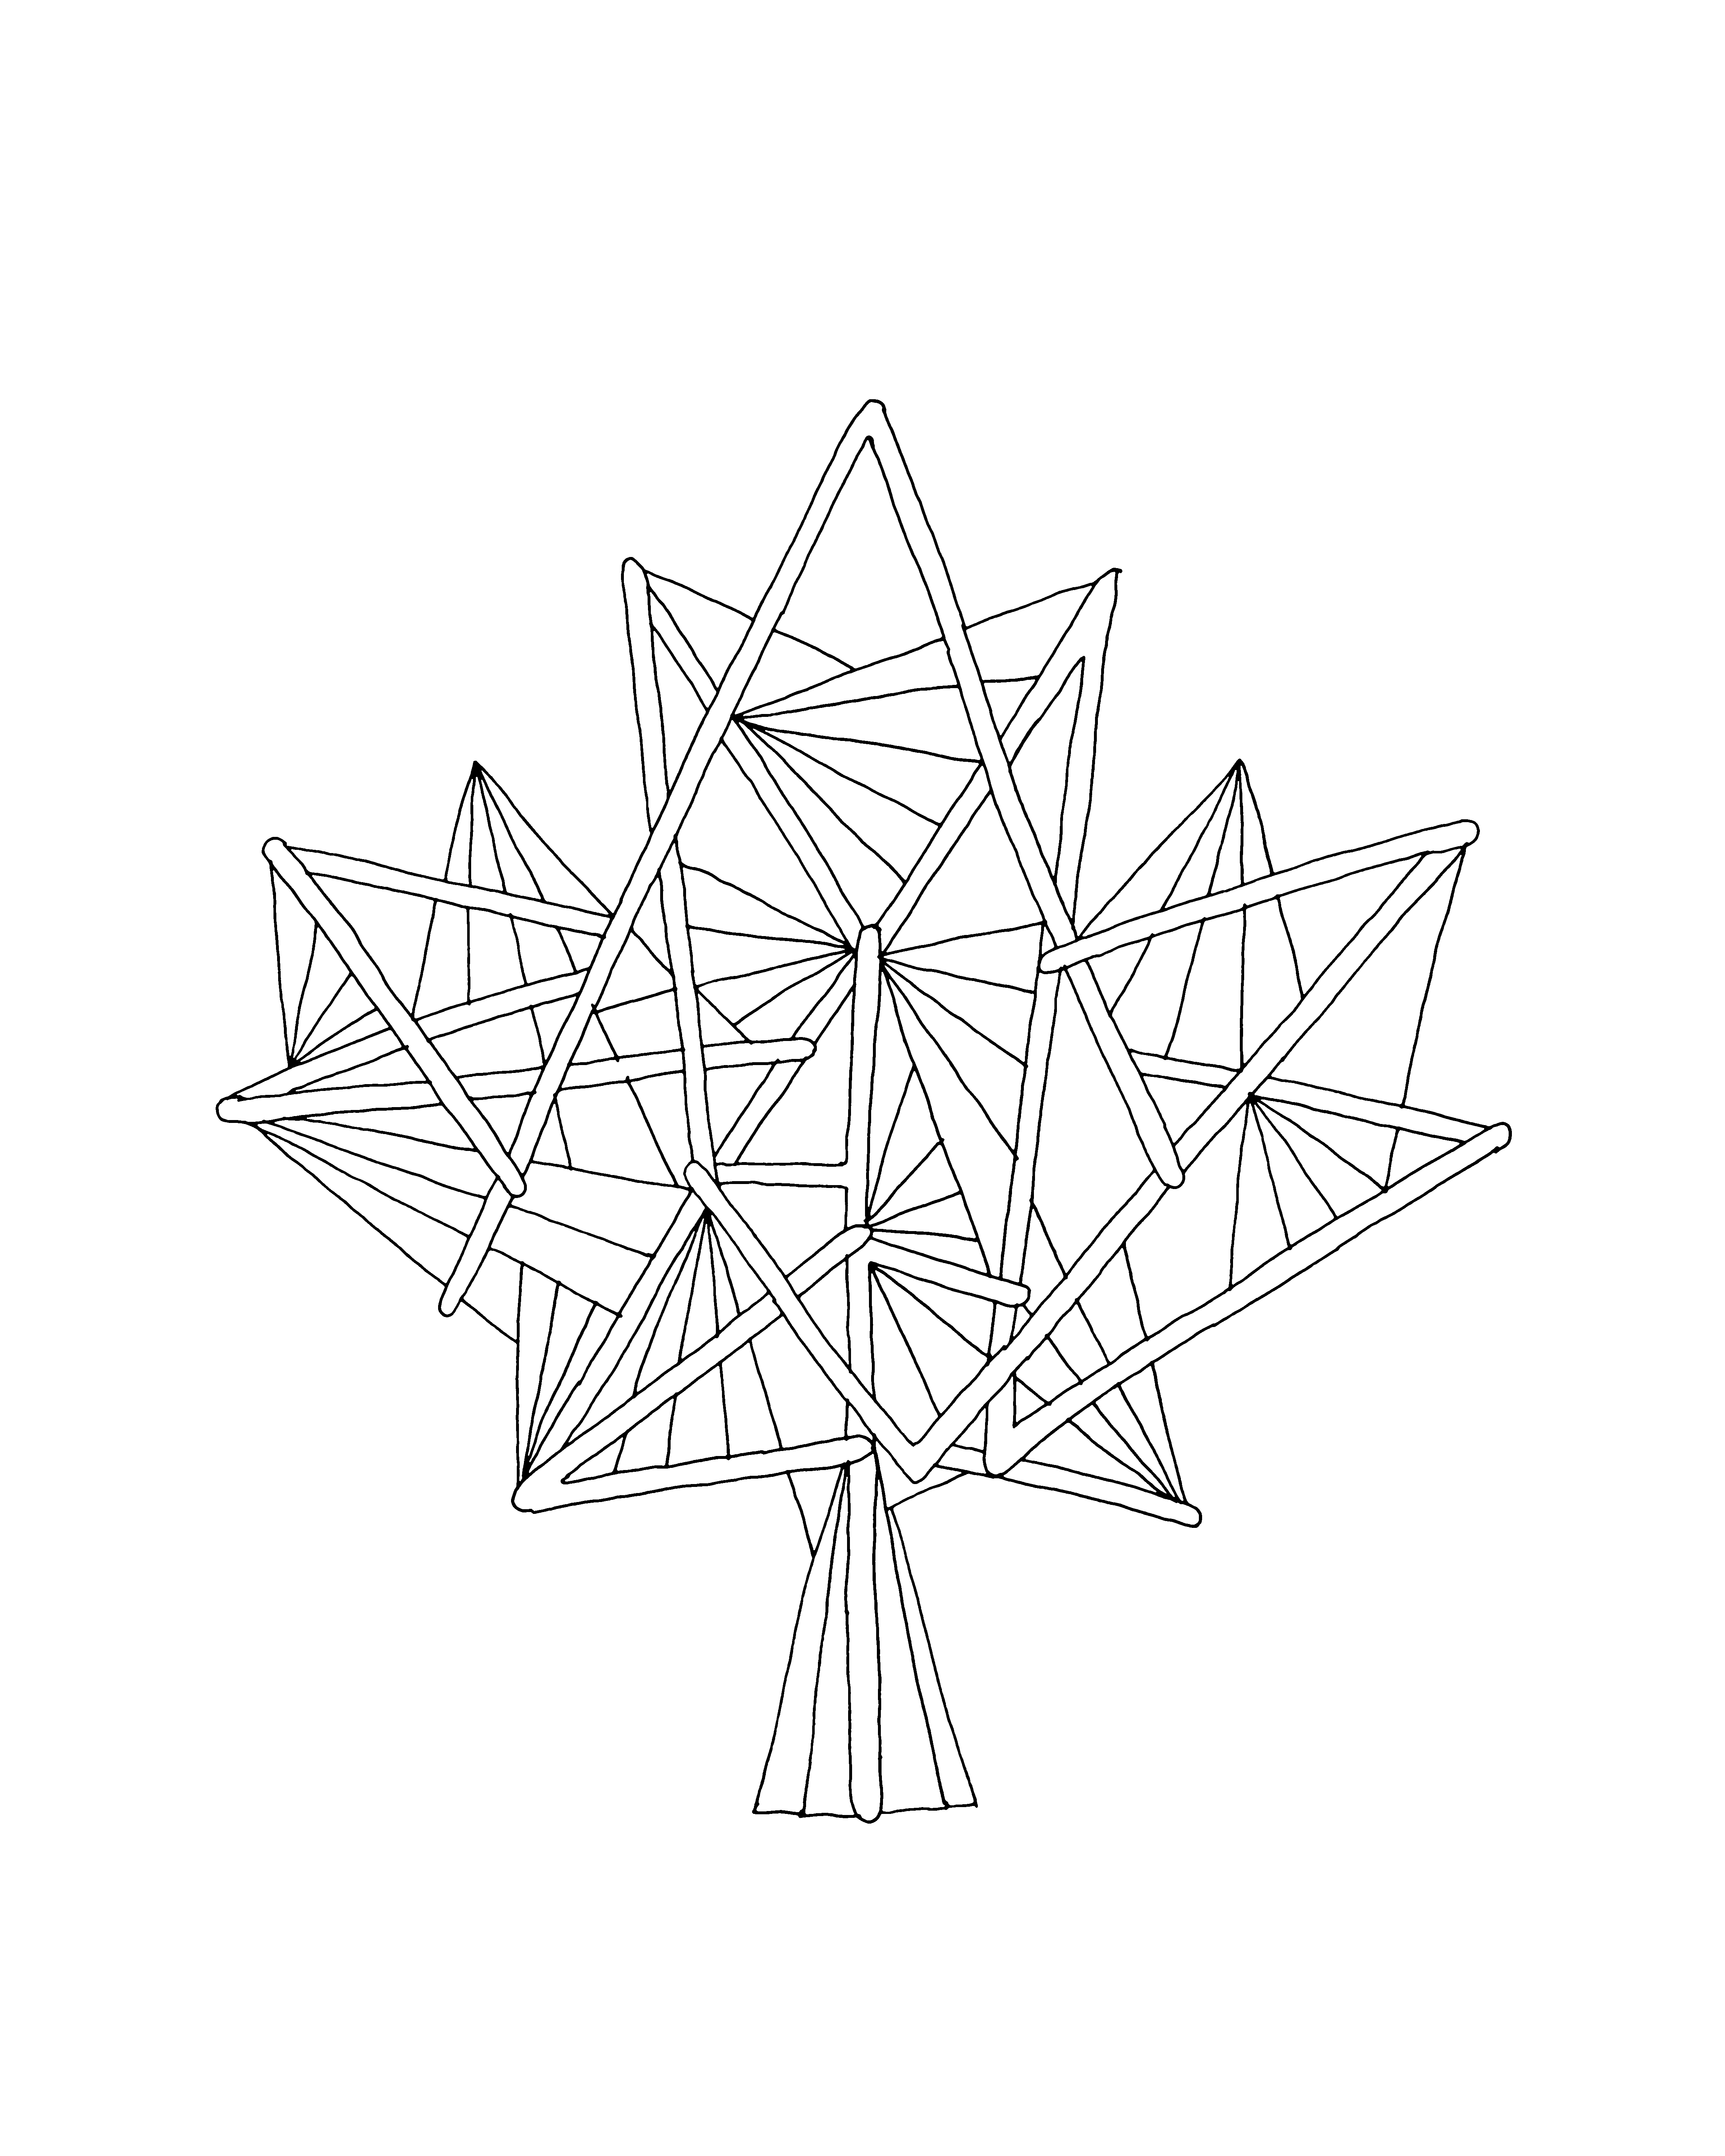 - 10,000 Pages: Canadian Maple Leaf Colouring Page 5782